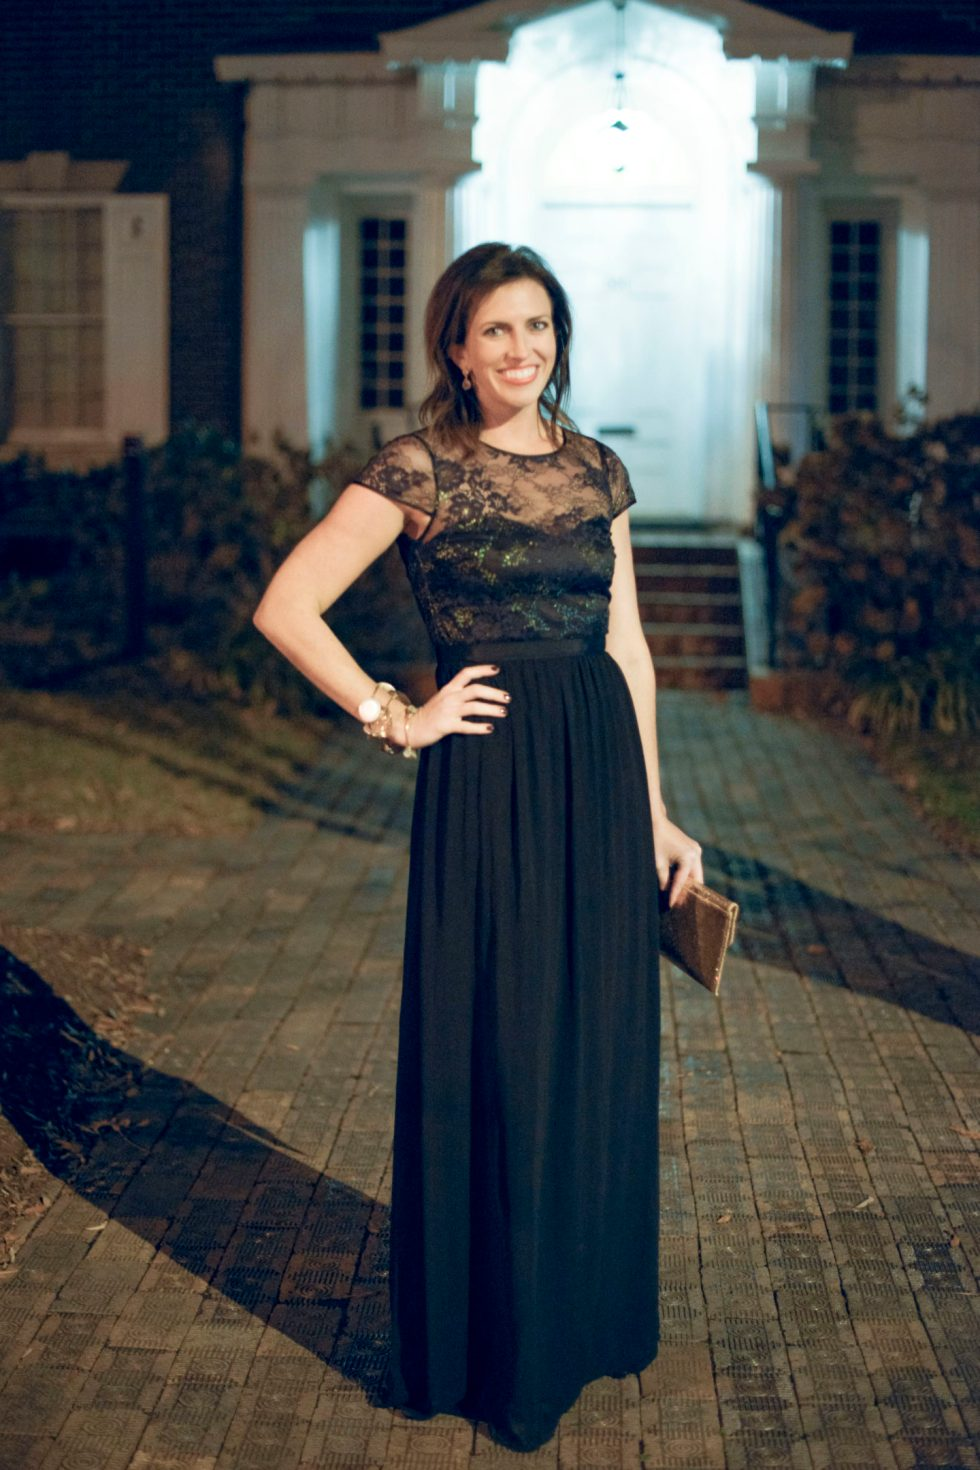 What to Wear to an Inaugural Ball